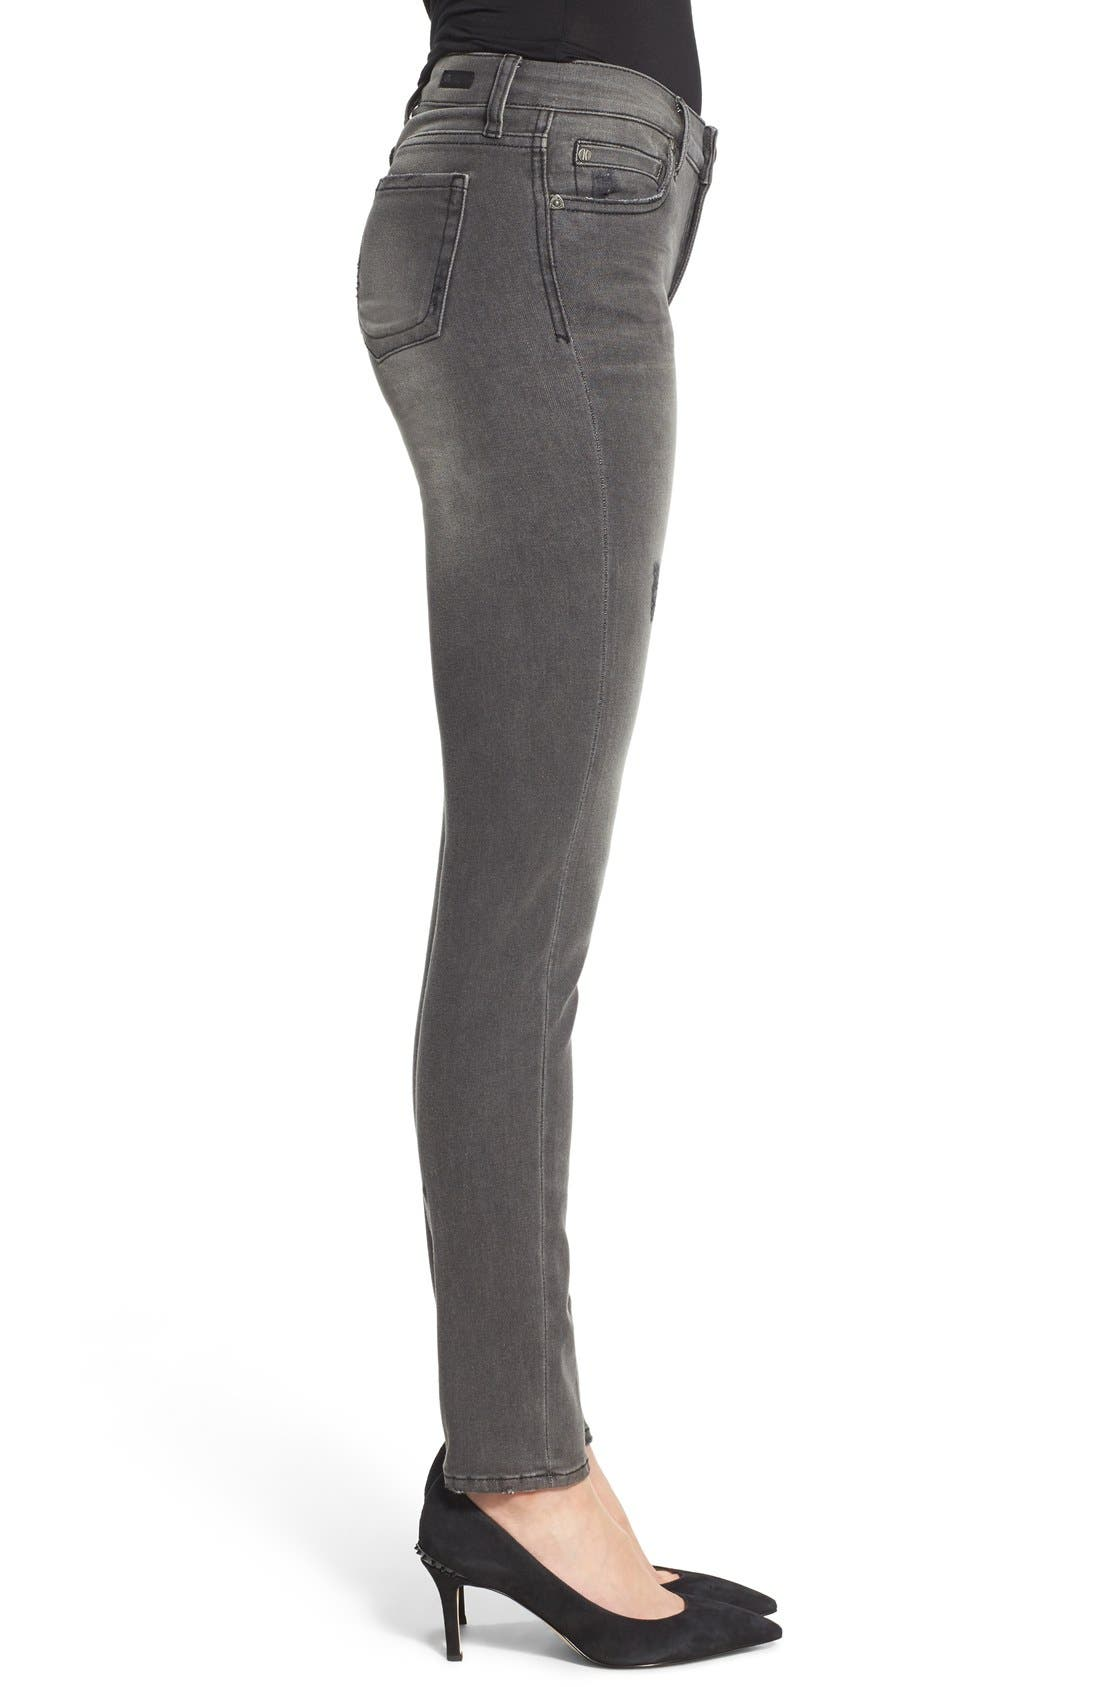 Alternate Image 3  - KUT from the Kloth 'Diana' Stretch Skinny Jeans (Continuity) (Regular & Petite)